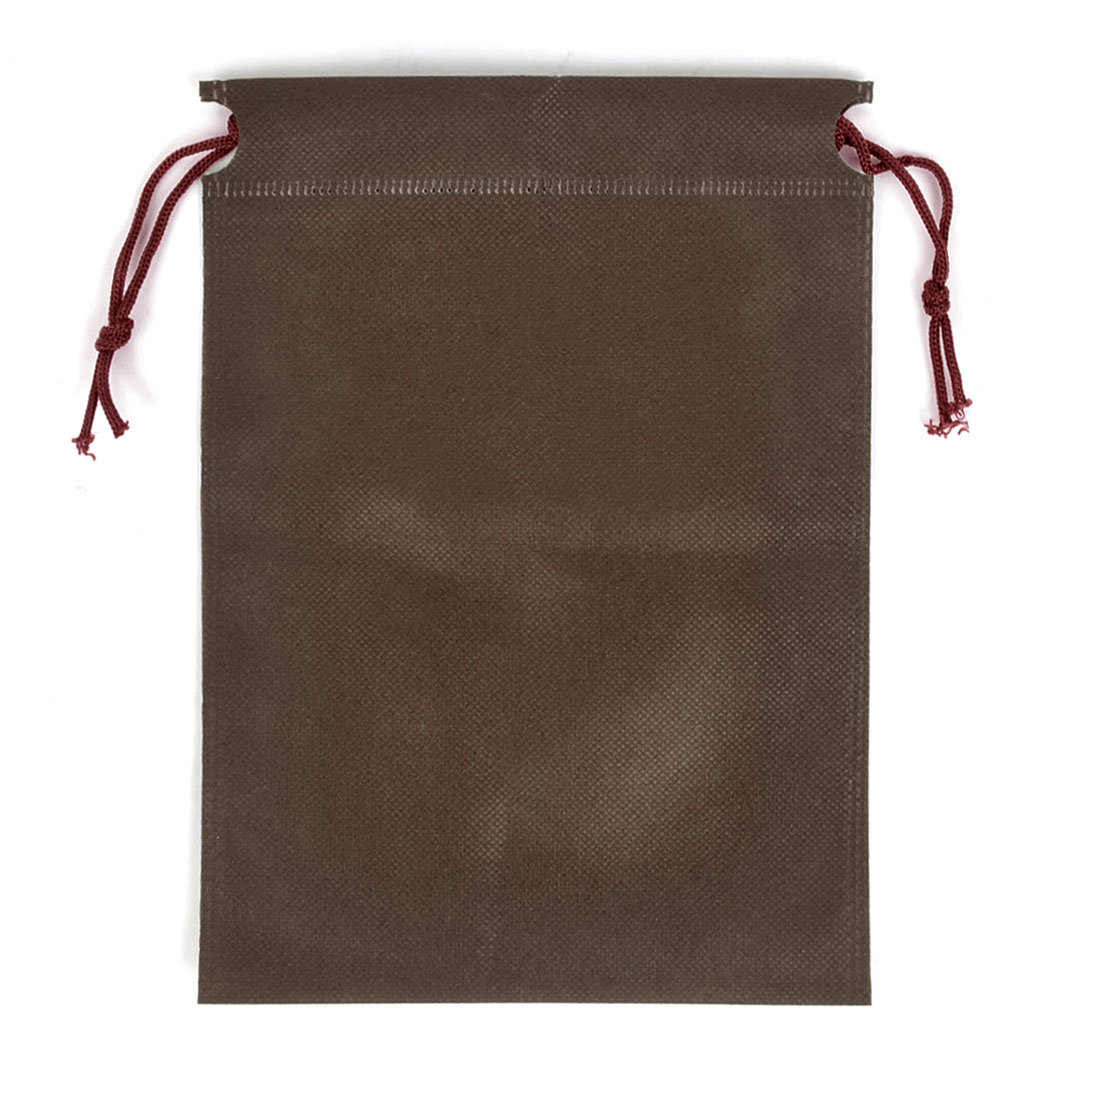 Travel Clothing Non-woven Fabric Storage Drawstring Bags Coffee Color 23 x 17cm